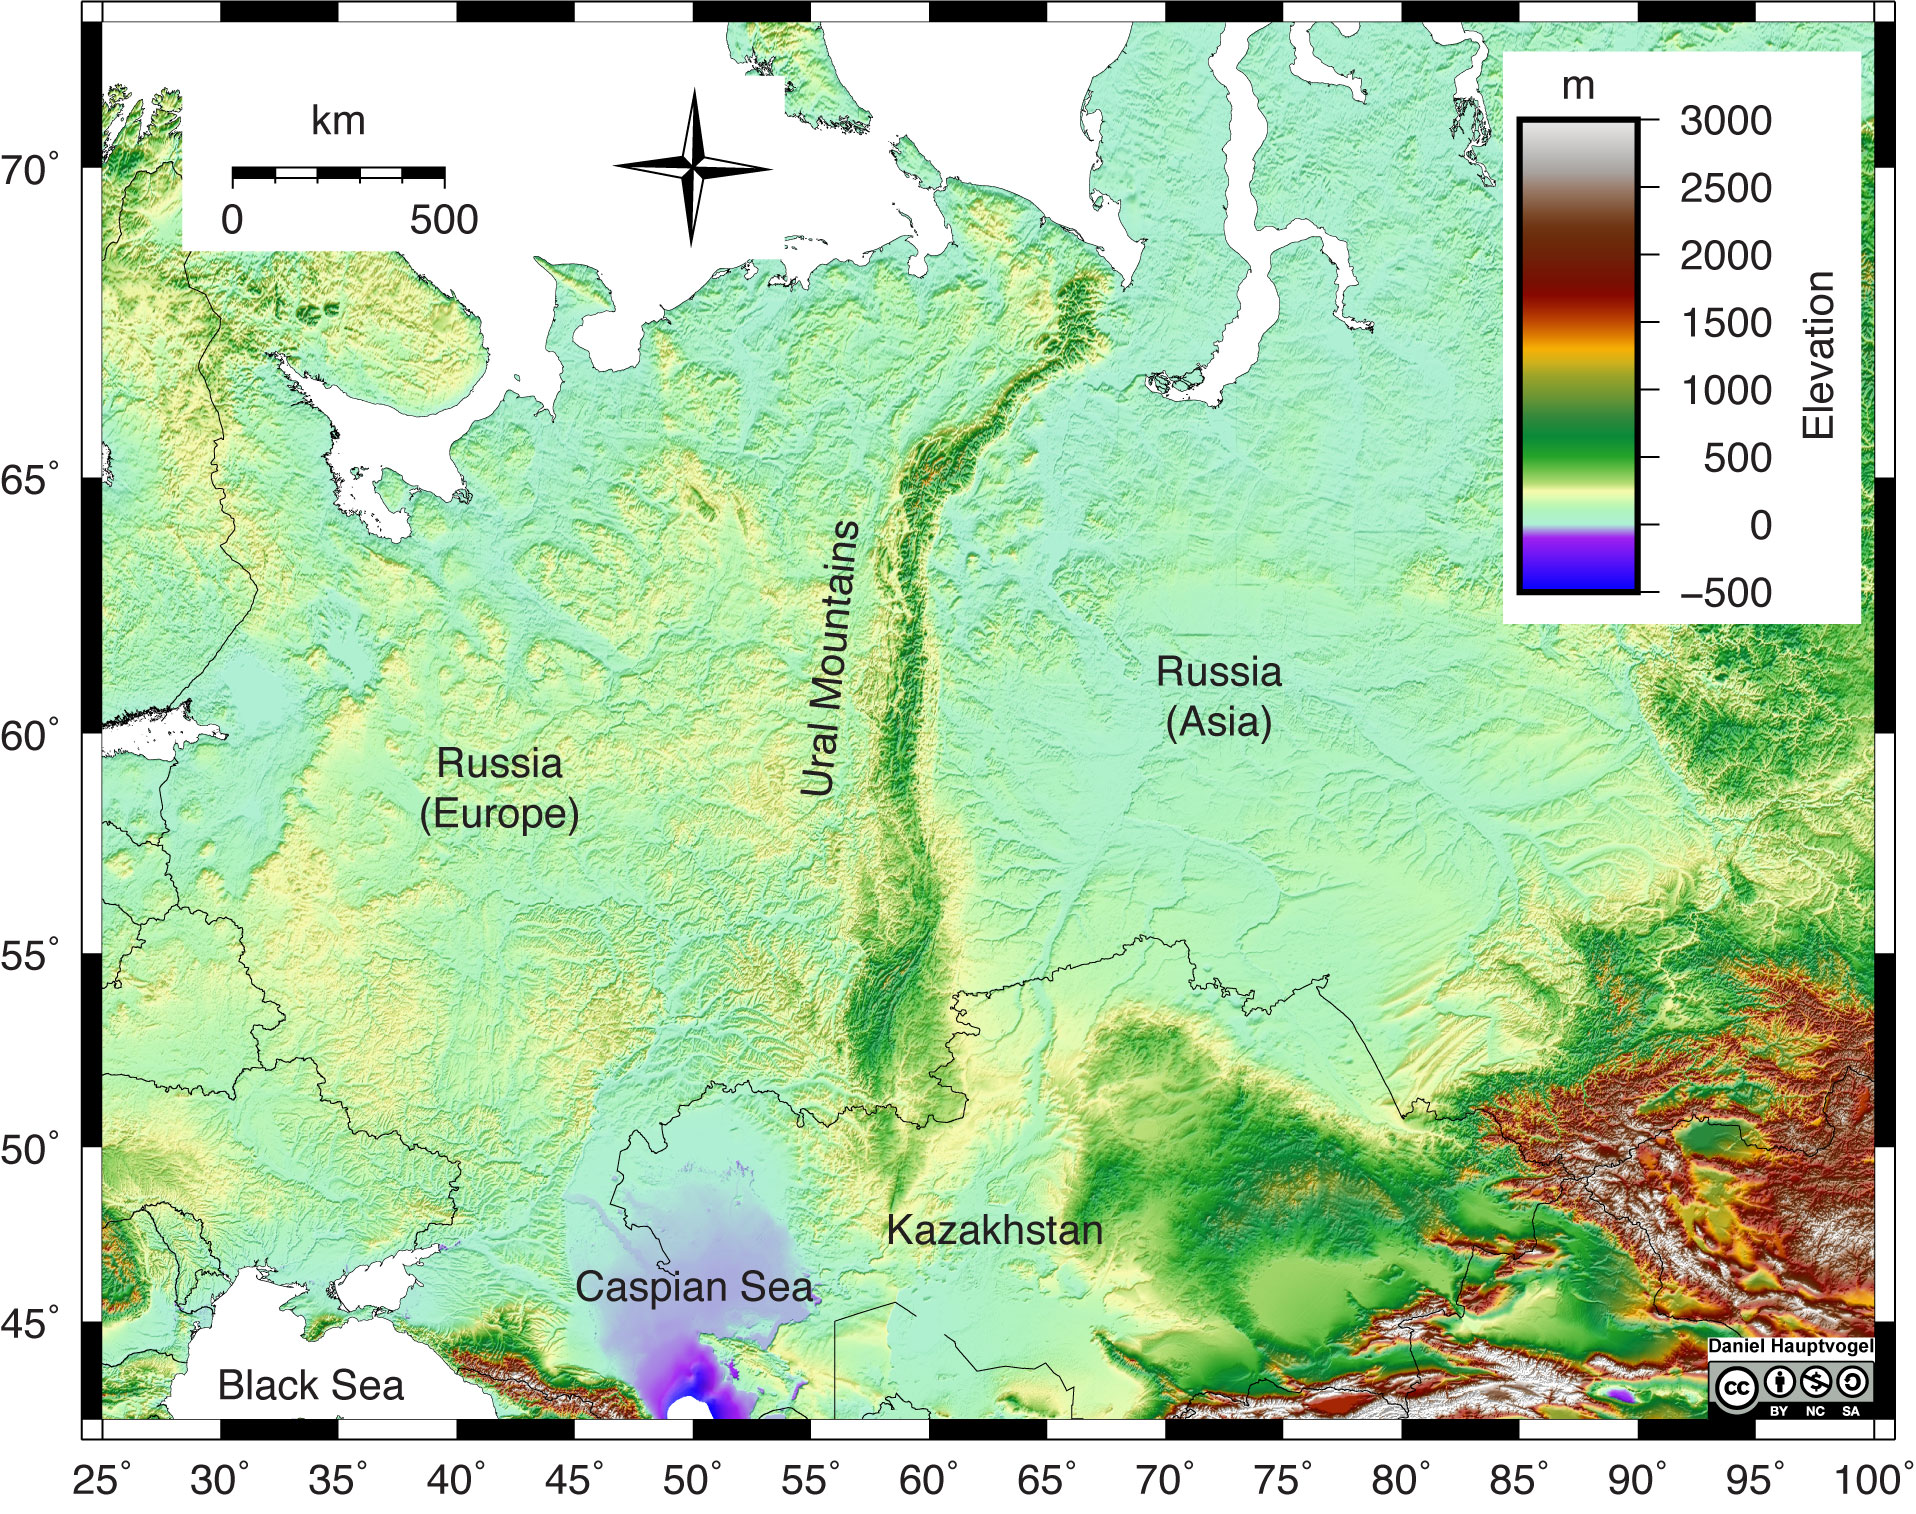 Shaded relief map of the Ural Mountains in Russia.